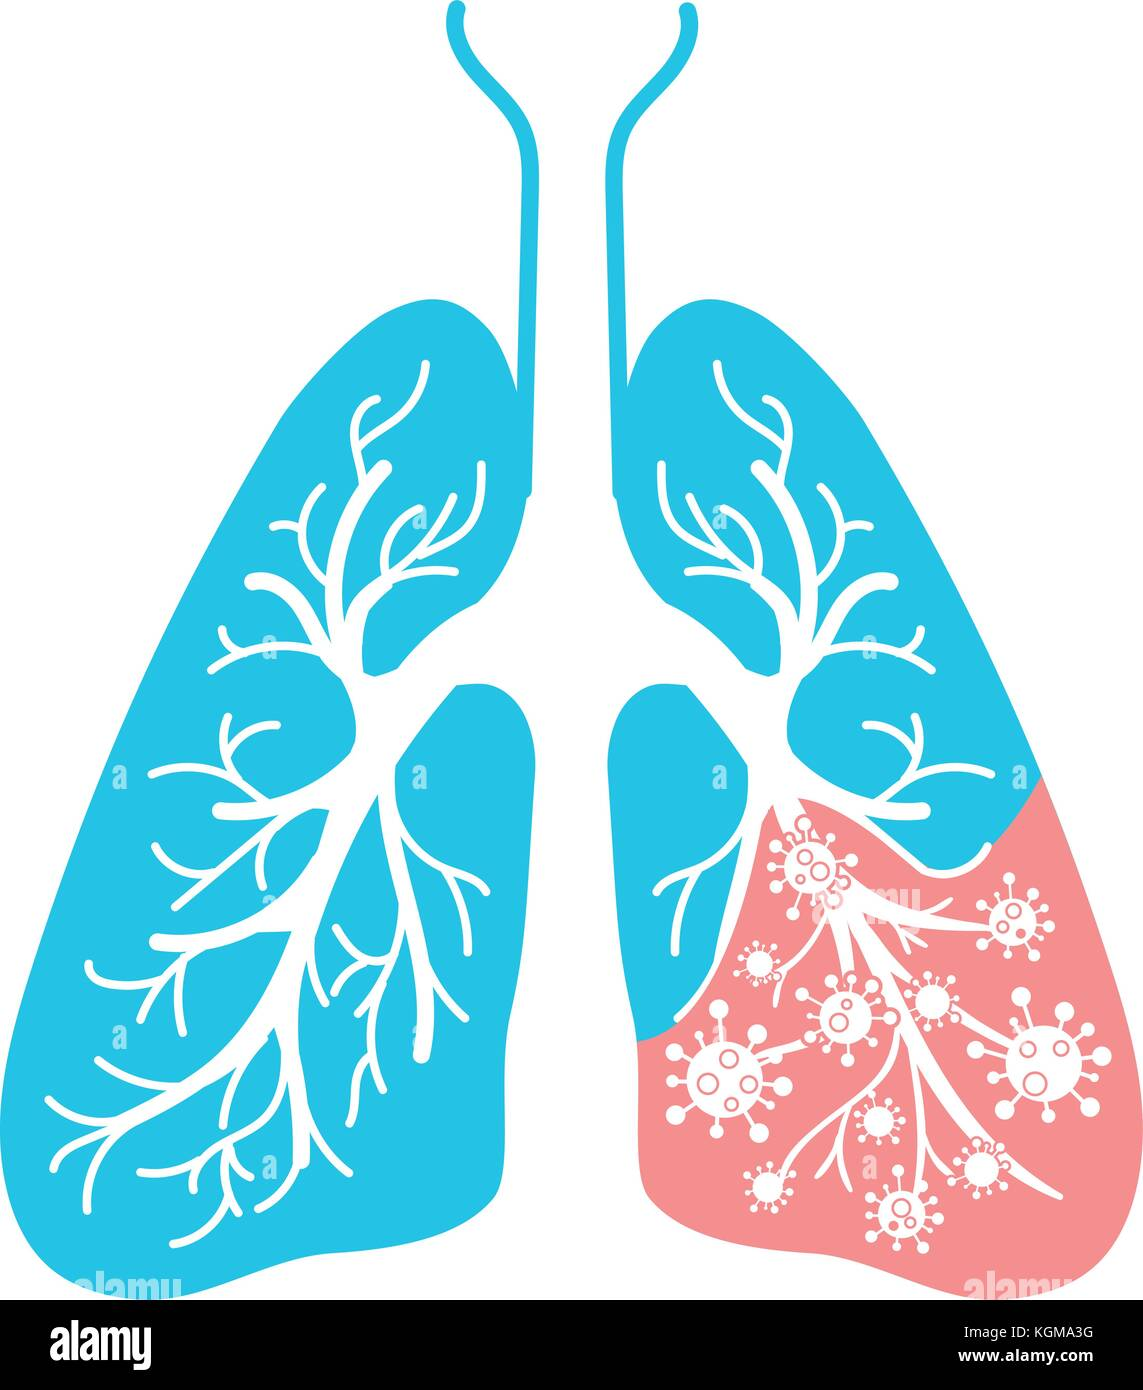 icon of lung disease, pneumonia, asthma, cancer in the form of lung anatomy and viruses, bacteria causing disease. - Stock Image